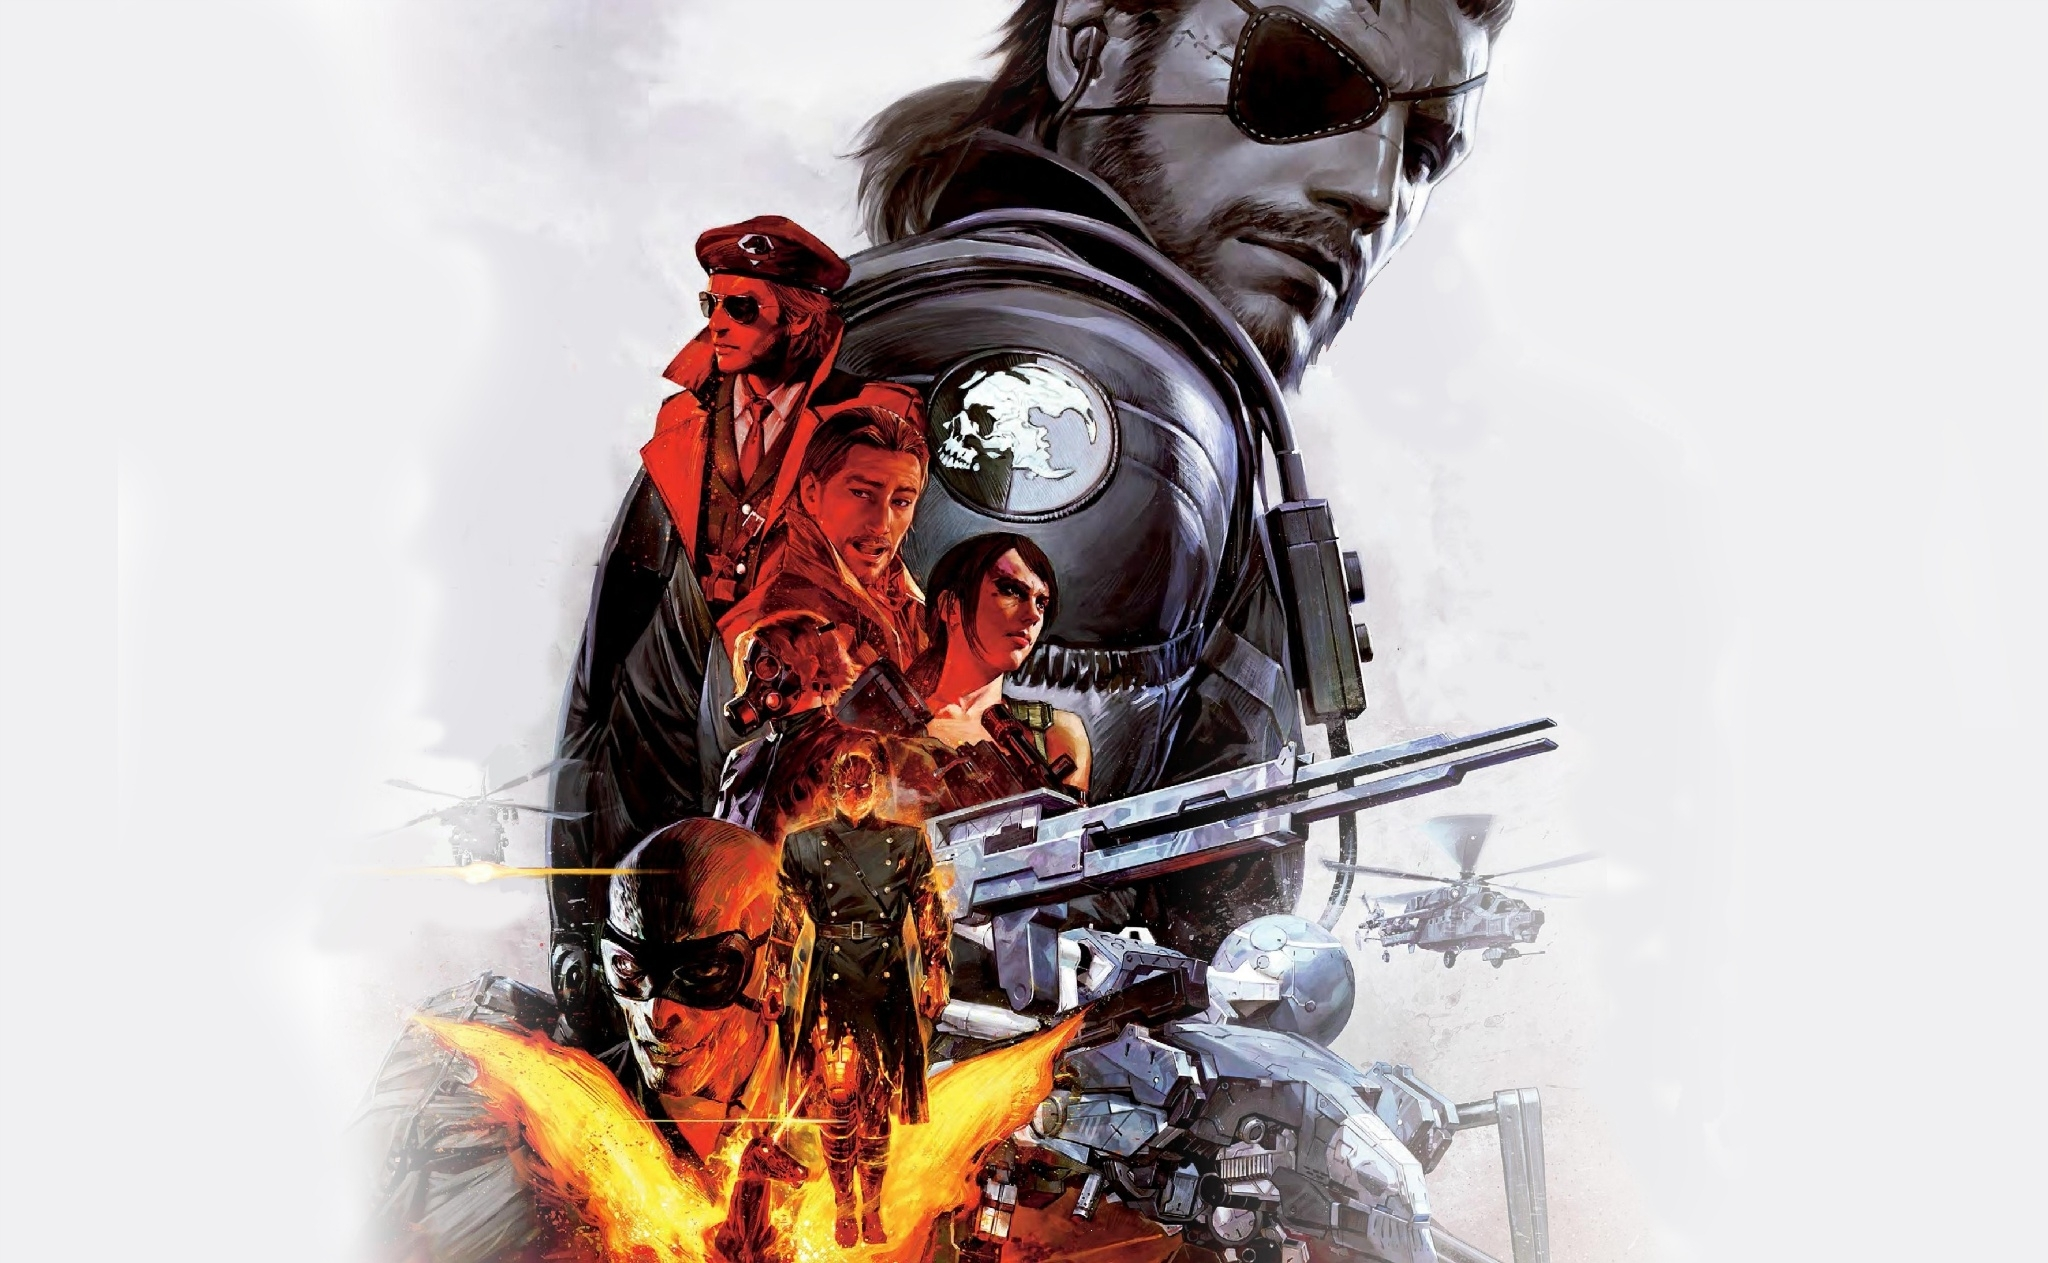 151 metal gear solid v: the phantom pain hd wallpapers